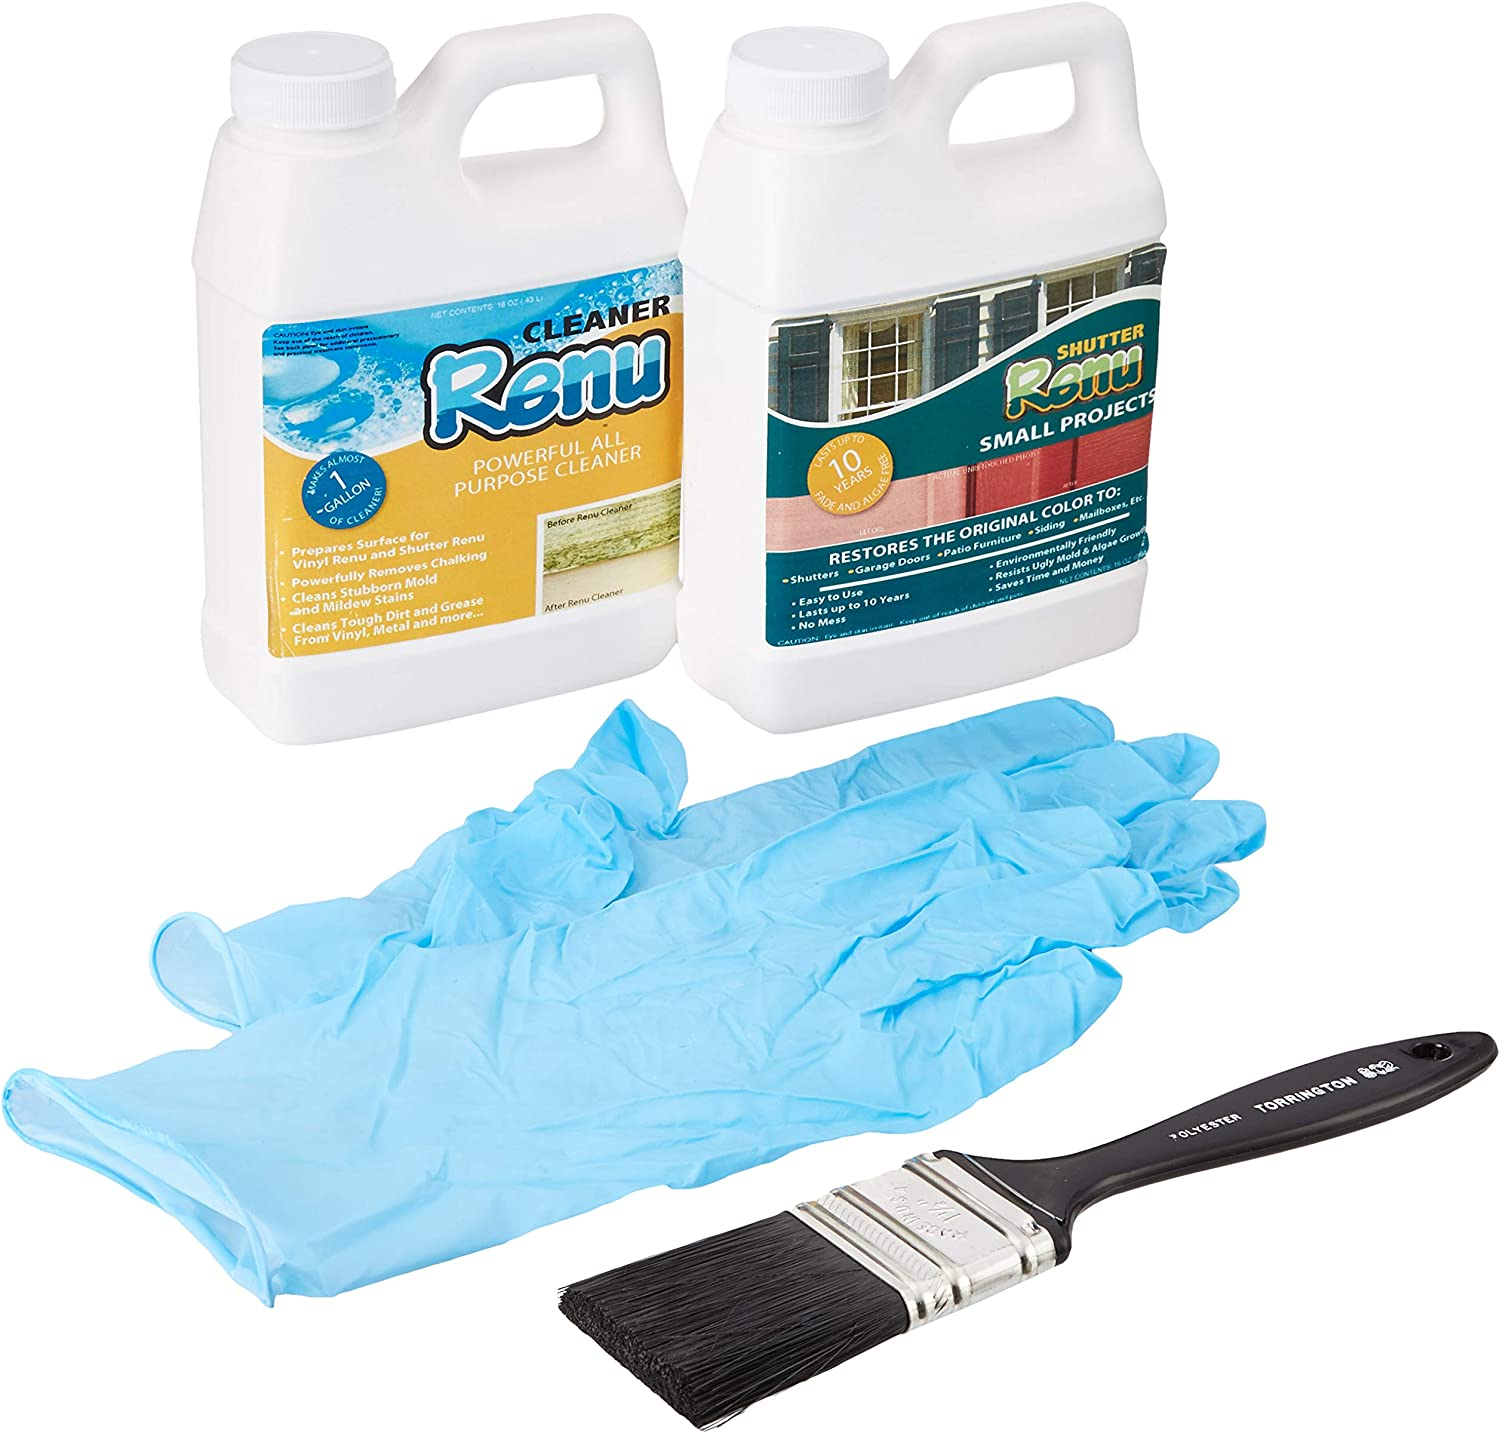 Shutter Renu Small Project Kit-Shutter Restorer Cleans, Protects and Restores Color to Faded Shutters, Patio Furniture, Mailboxes, Doors & Fiberglass. Easy to Use and Lasts 10 Years. No Toxic Odors